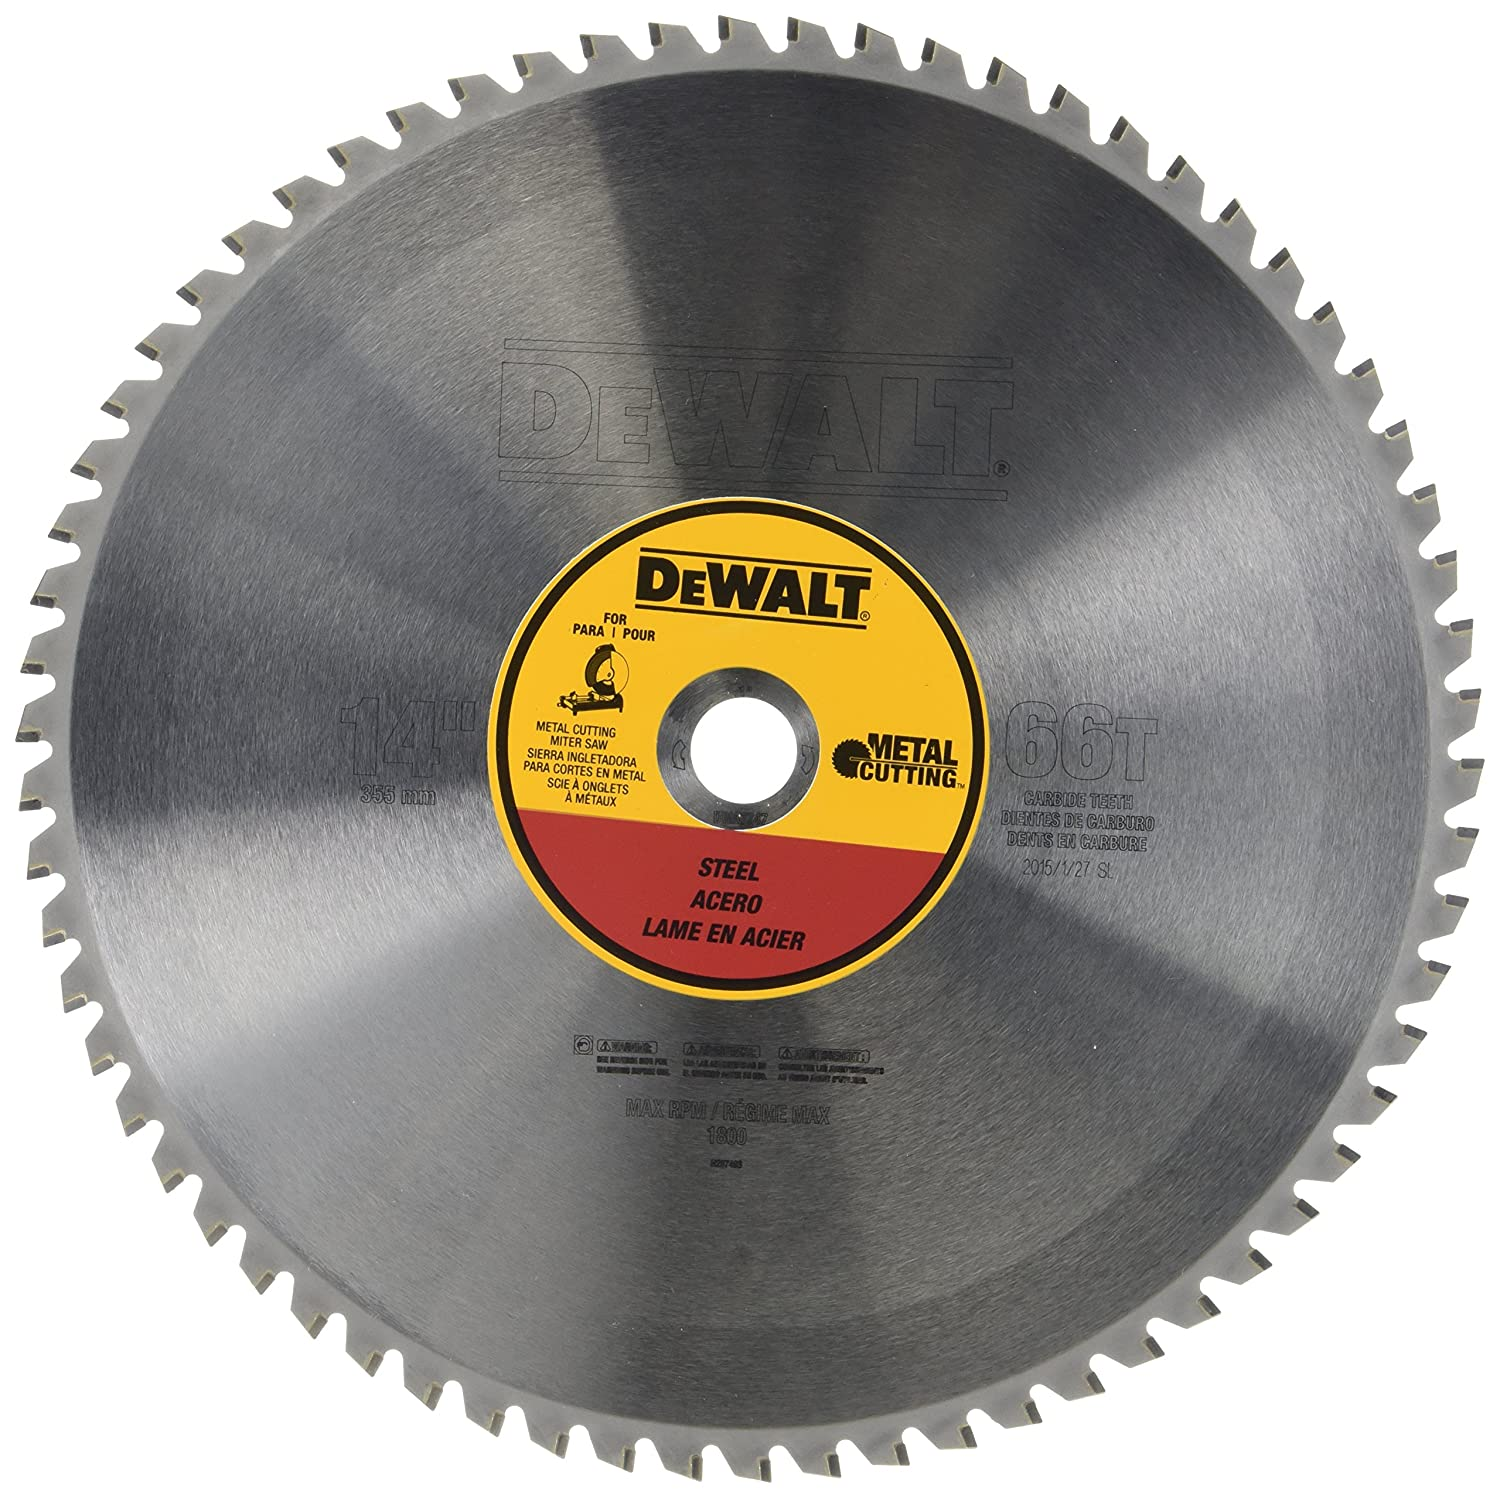 DEWALT DWA7747 66 Teeth Heavy Gauge Ferrous Metal Cutting 1-Inch Arbor, 14-Inch